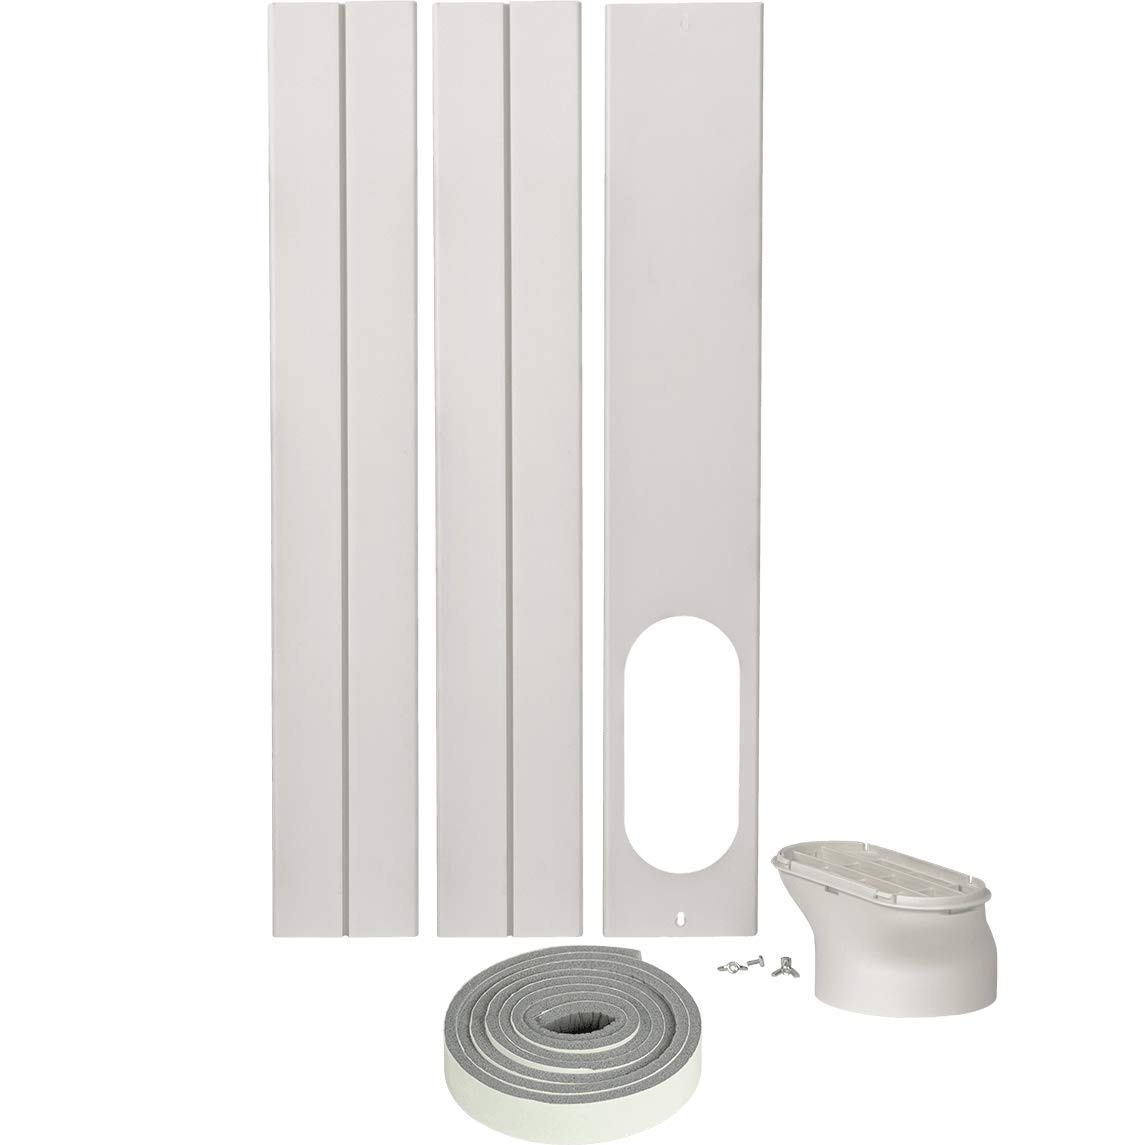 Honeywell Portable AC Sliding Glass Door Kit (A-4239-300-P)